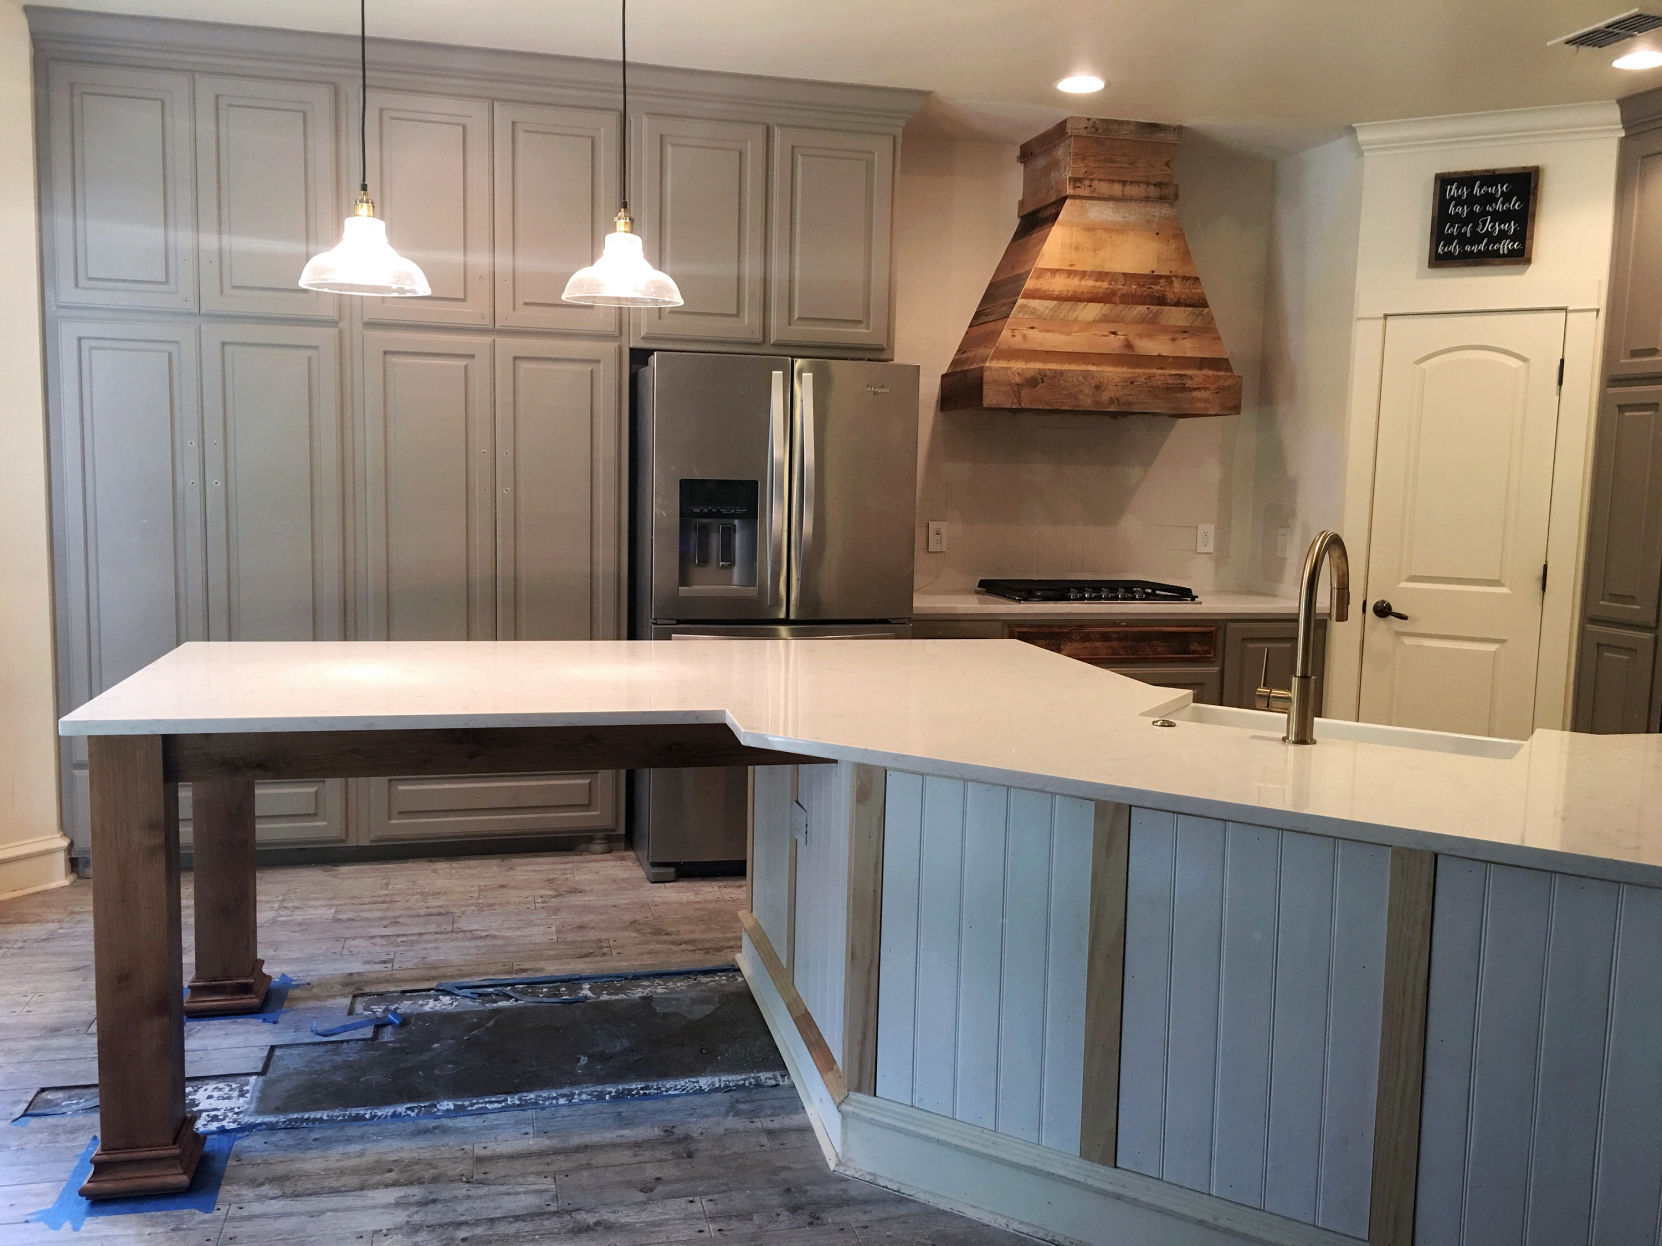 ATHOME ASKANGIESLIST REMODELING COSTS MCT